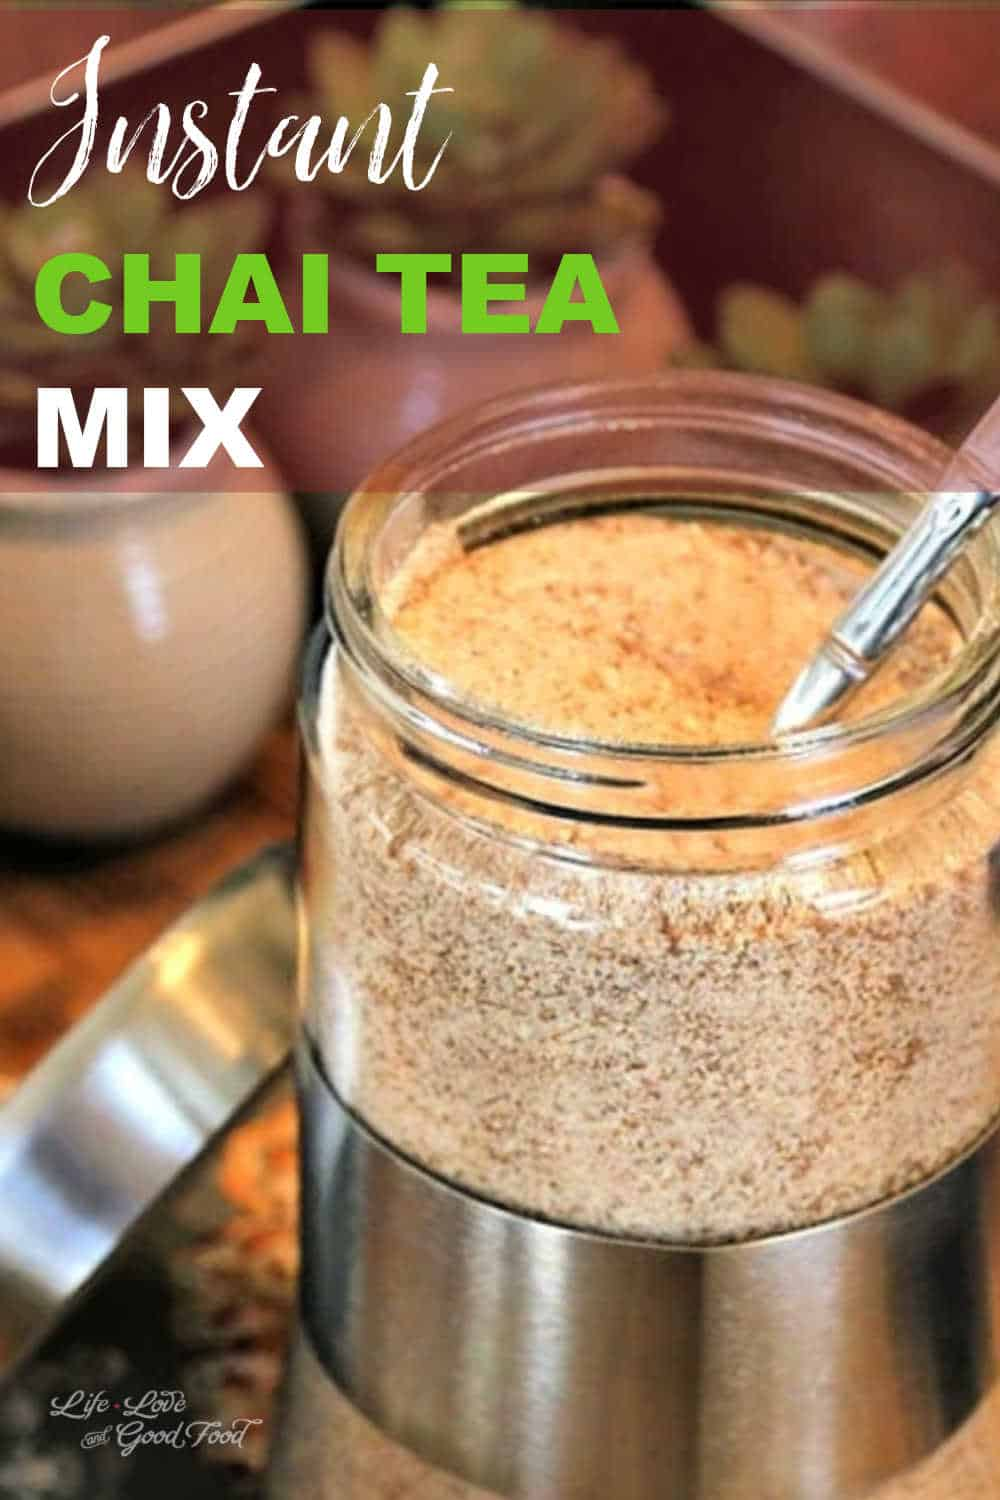 Enjoy a spicy mug of chai tea at home with this instant Chai Tea Mix recipe. Breathe in the soothing aromas of cinnamon, cloves, ginger, and cardamom with every sip! You'll want to make a double batch – chai tea mix makes great Easter or teacher gifts. #chaitea #instantdrink